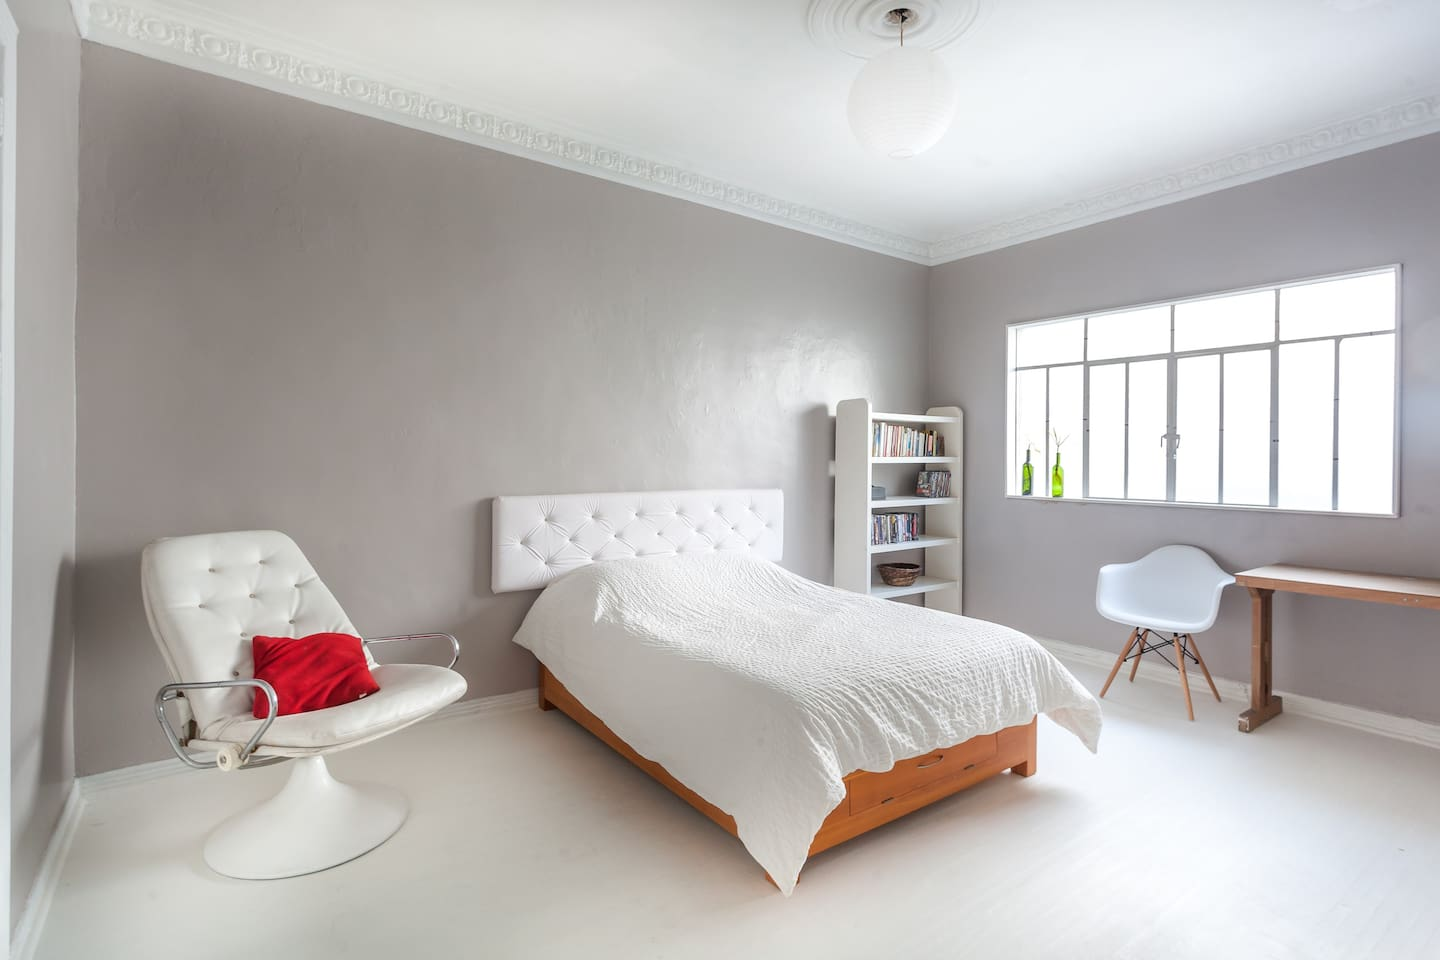 Your spacious, comfortable and very well lit bedroom.